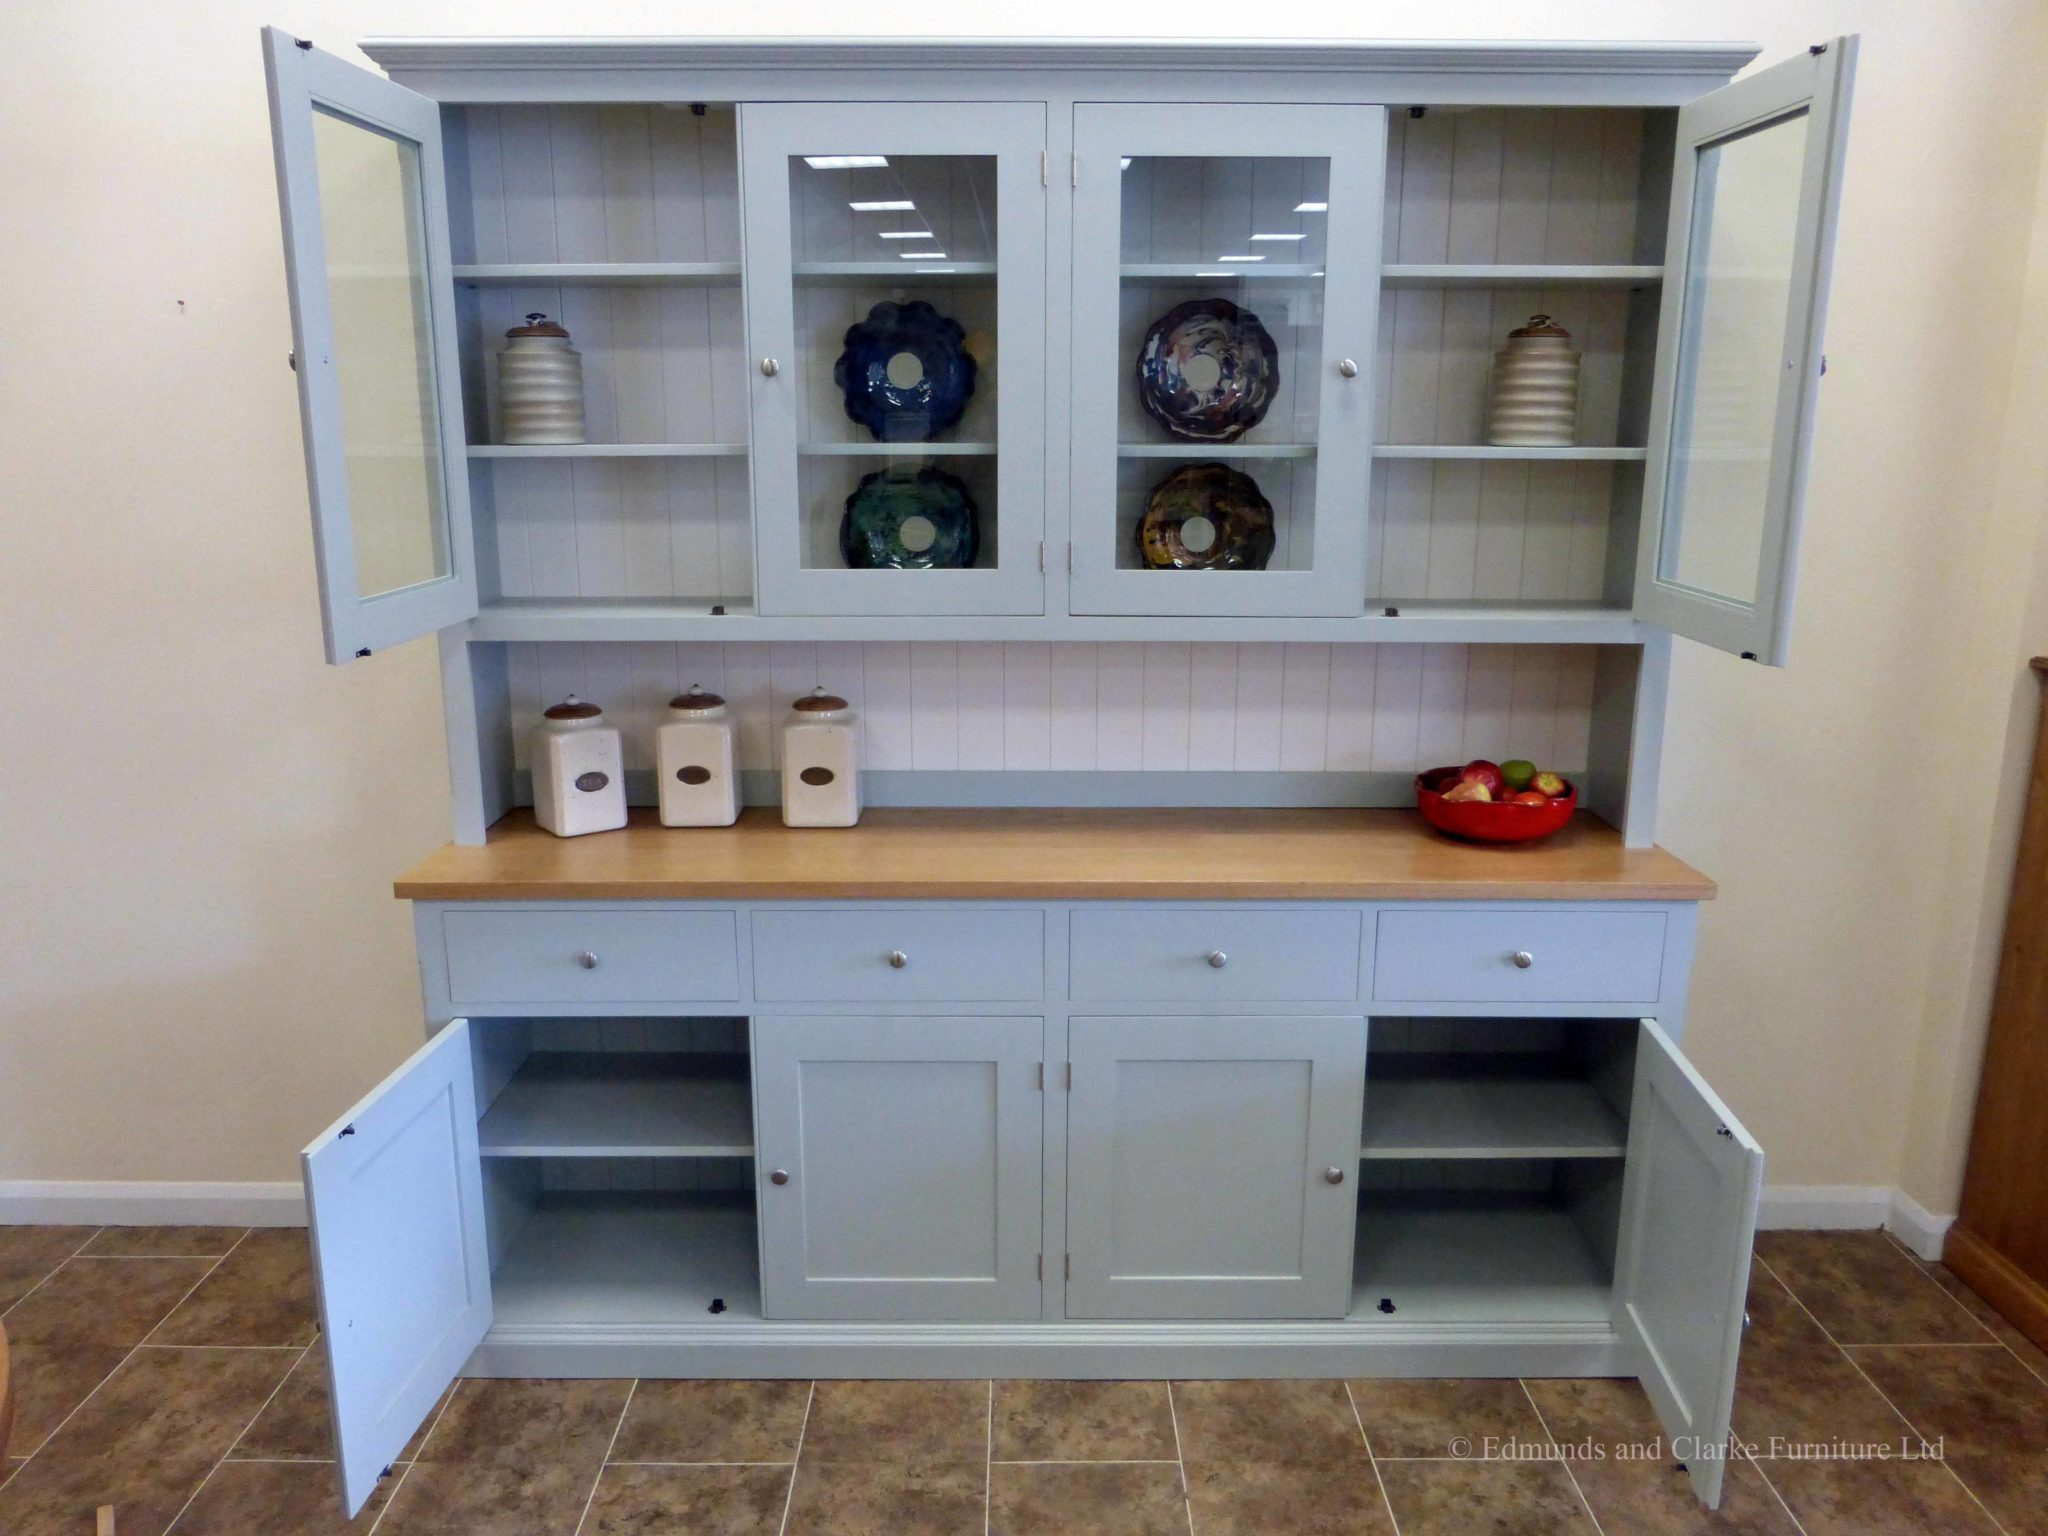 7ft Painted Half glazed dresser. Handmade with solid oak top on the sideboards, painted shelves, 4 drawers with 4 large cupboards below. 4 door glazed rack above painted in southwold sky blue and satin nickel knobs. contrasting white backboards on racking EDM021